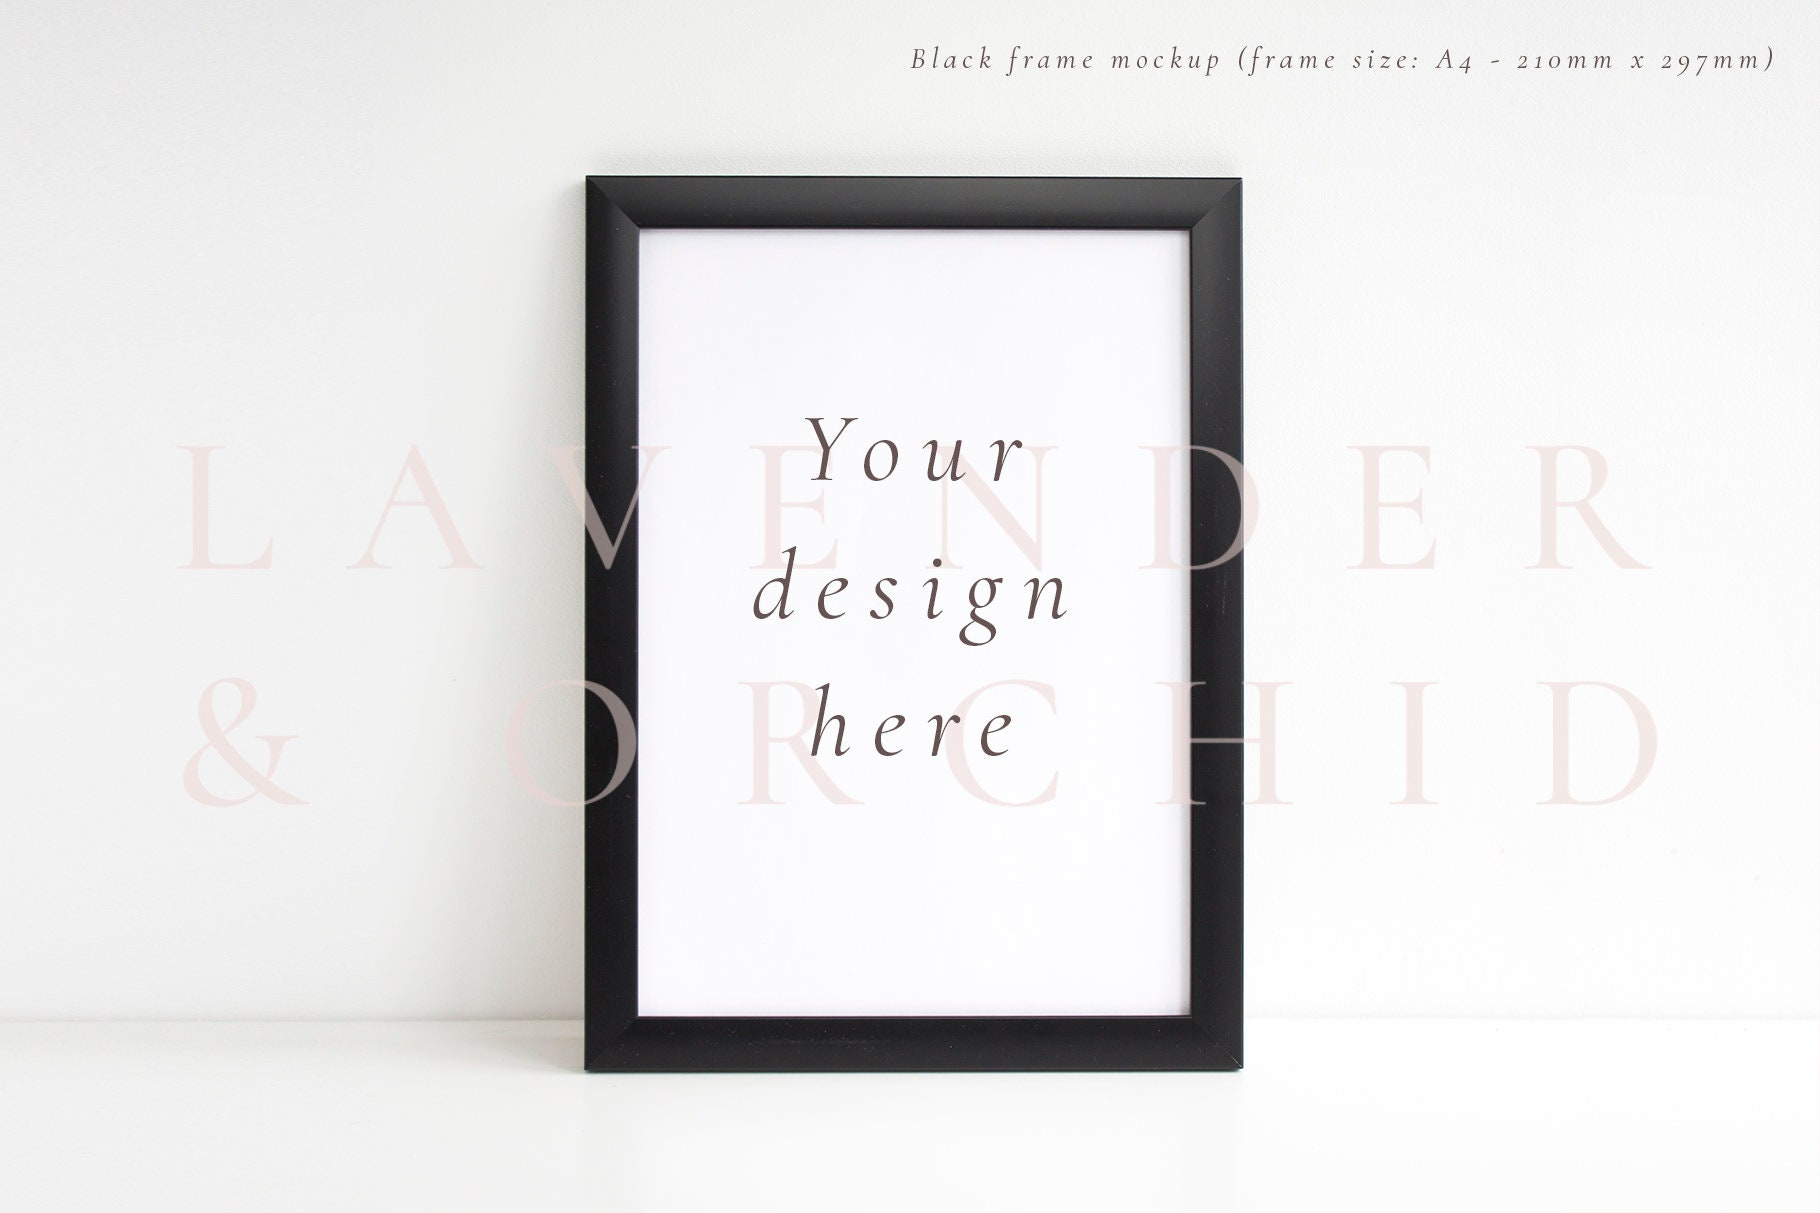 Black frame mockup styled stock photography a4 picture frame zoom jeuxipadfo Choice Image